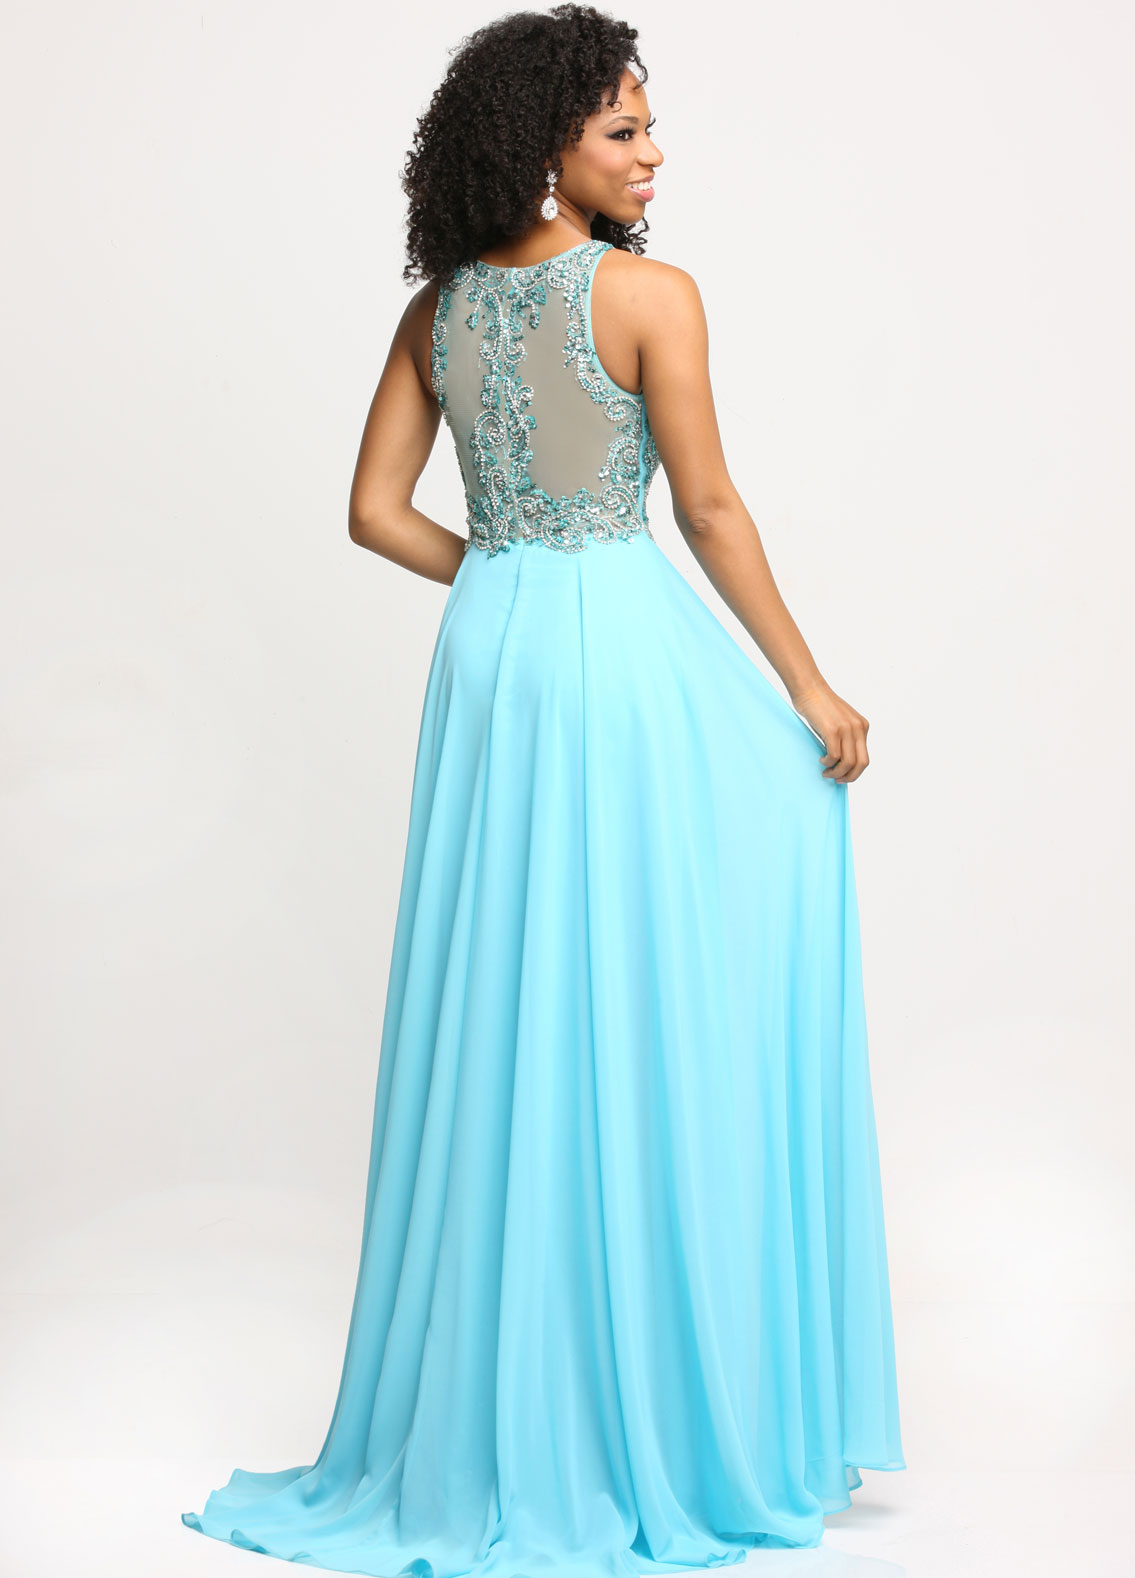 Image showing back view of style #71688